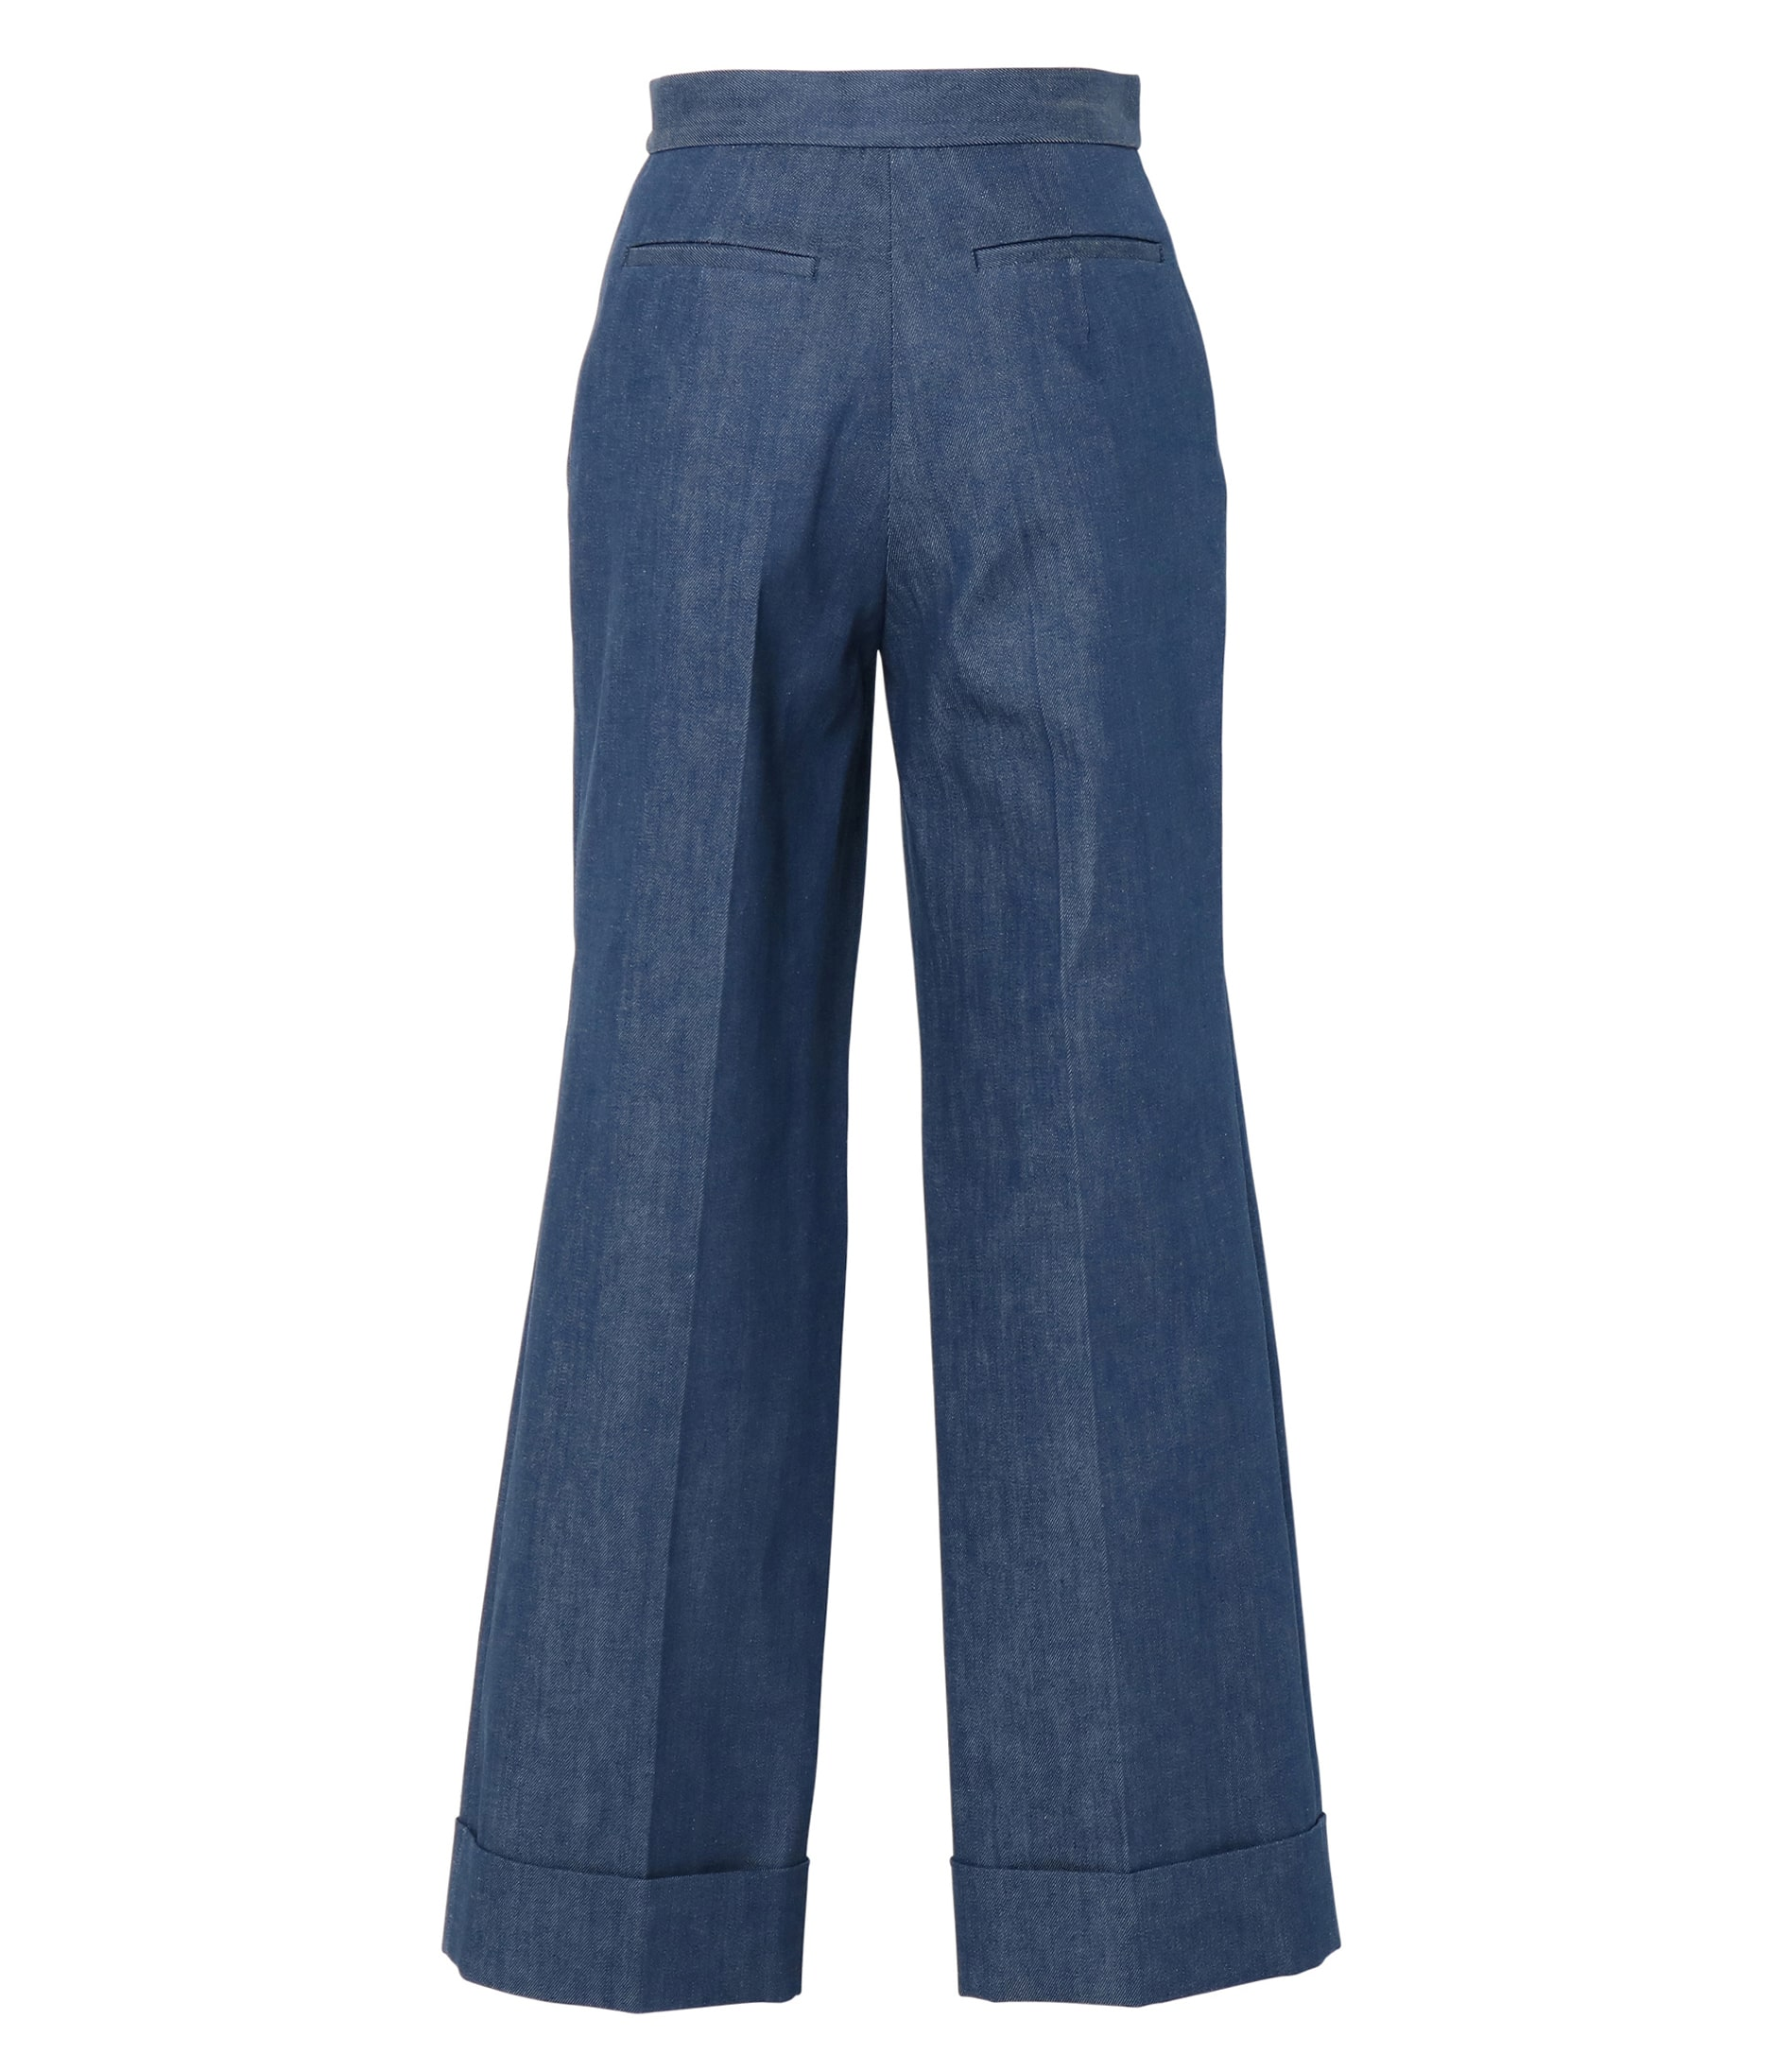 CATALINA TROUSERS 詳細画像 BLUE 3